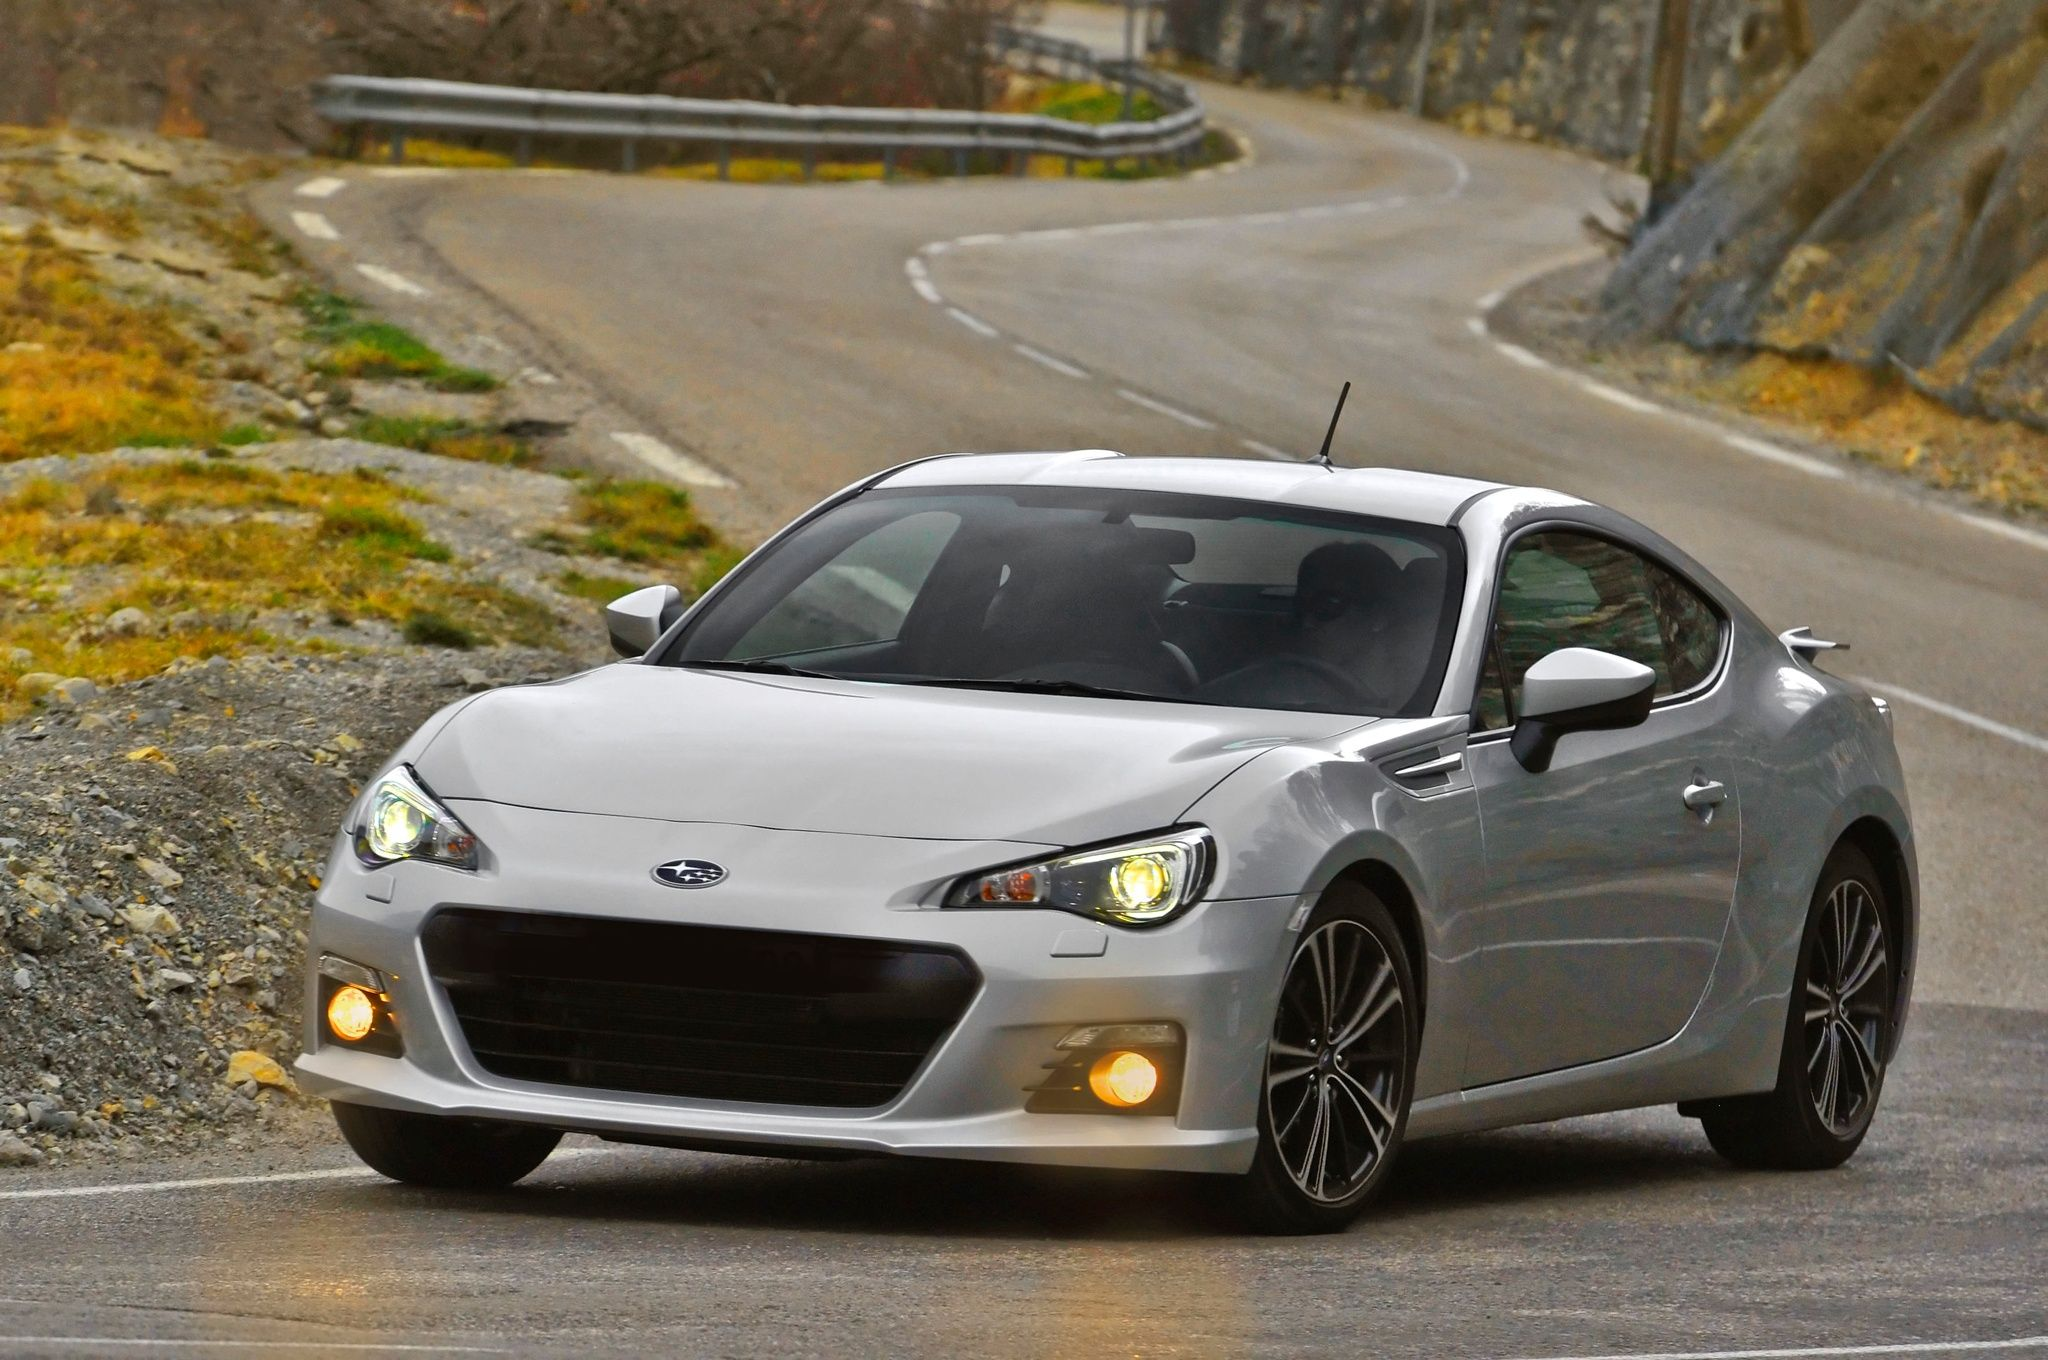 FREE: 2013 Subaru BRZ, OEM Electrical Wiring Diagram.